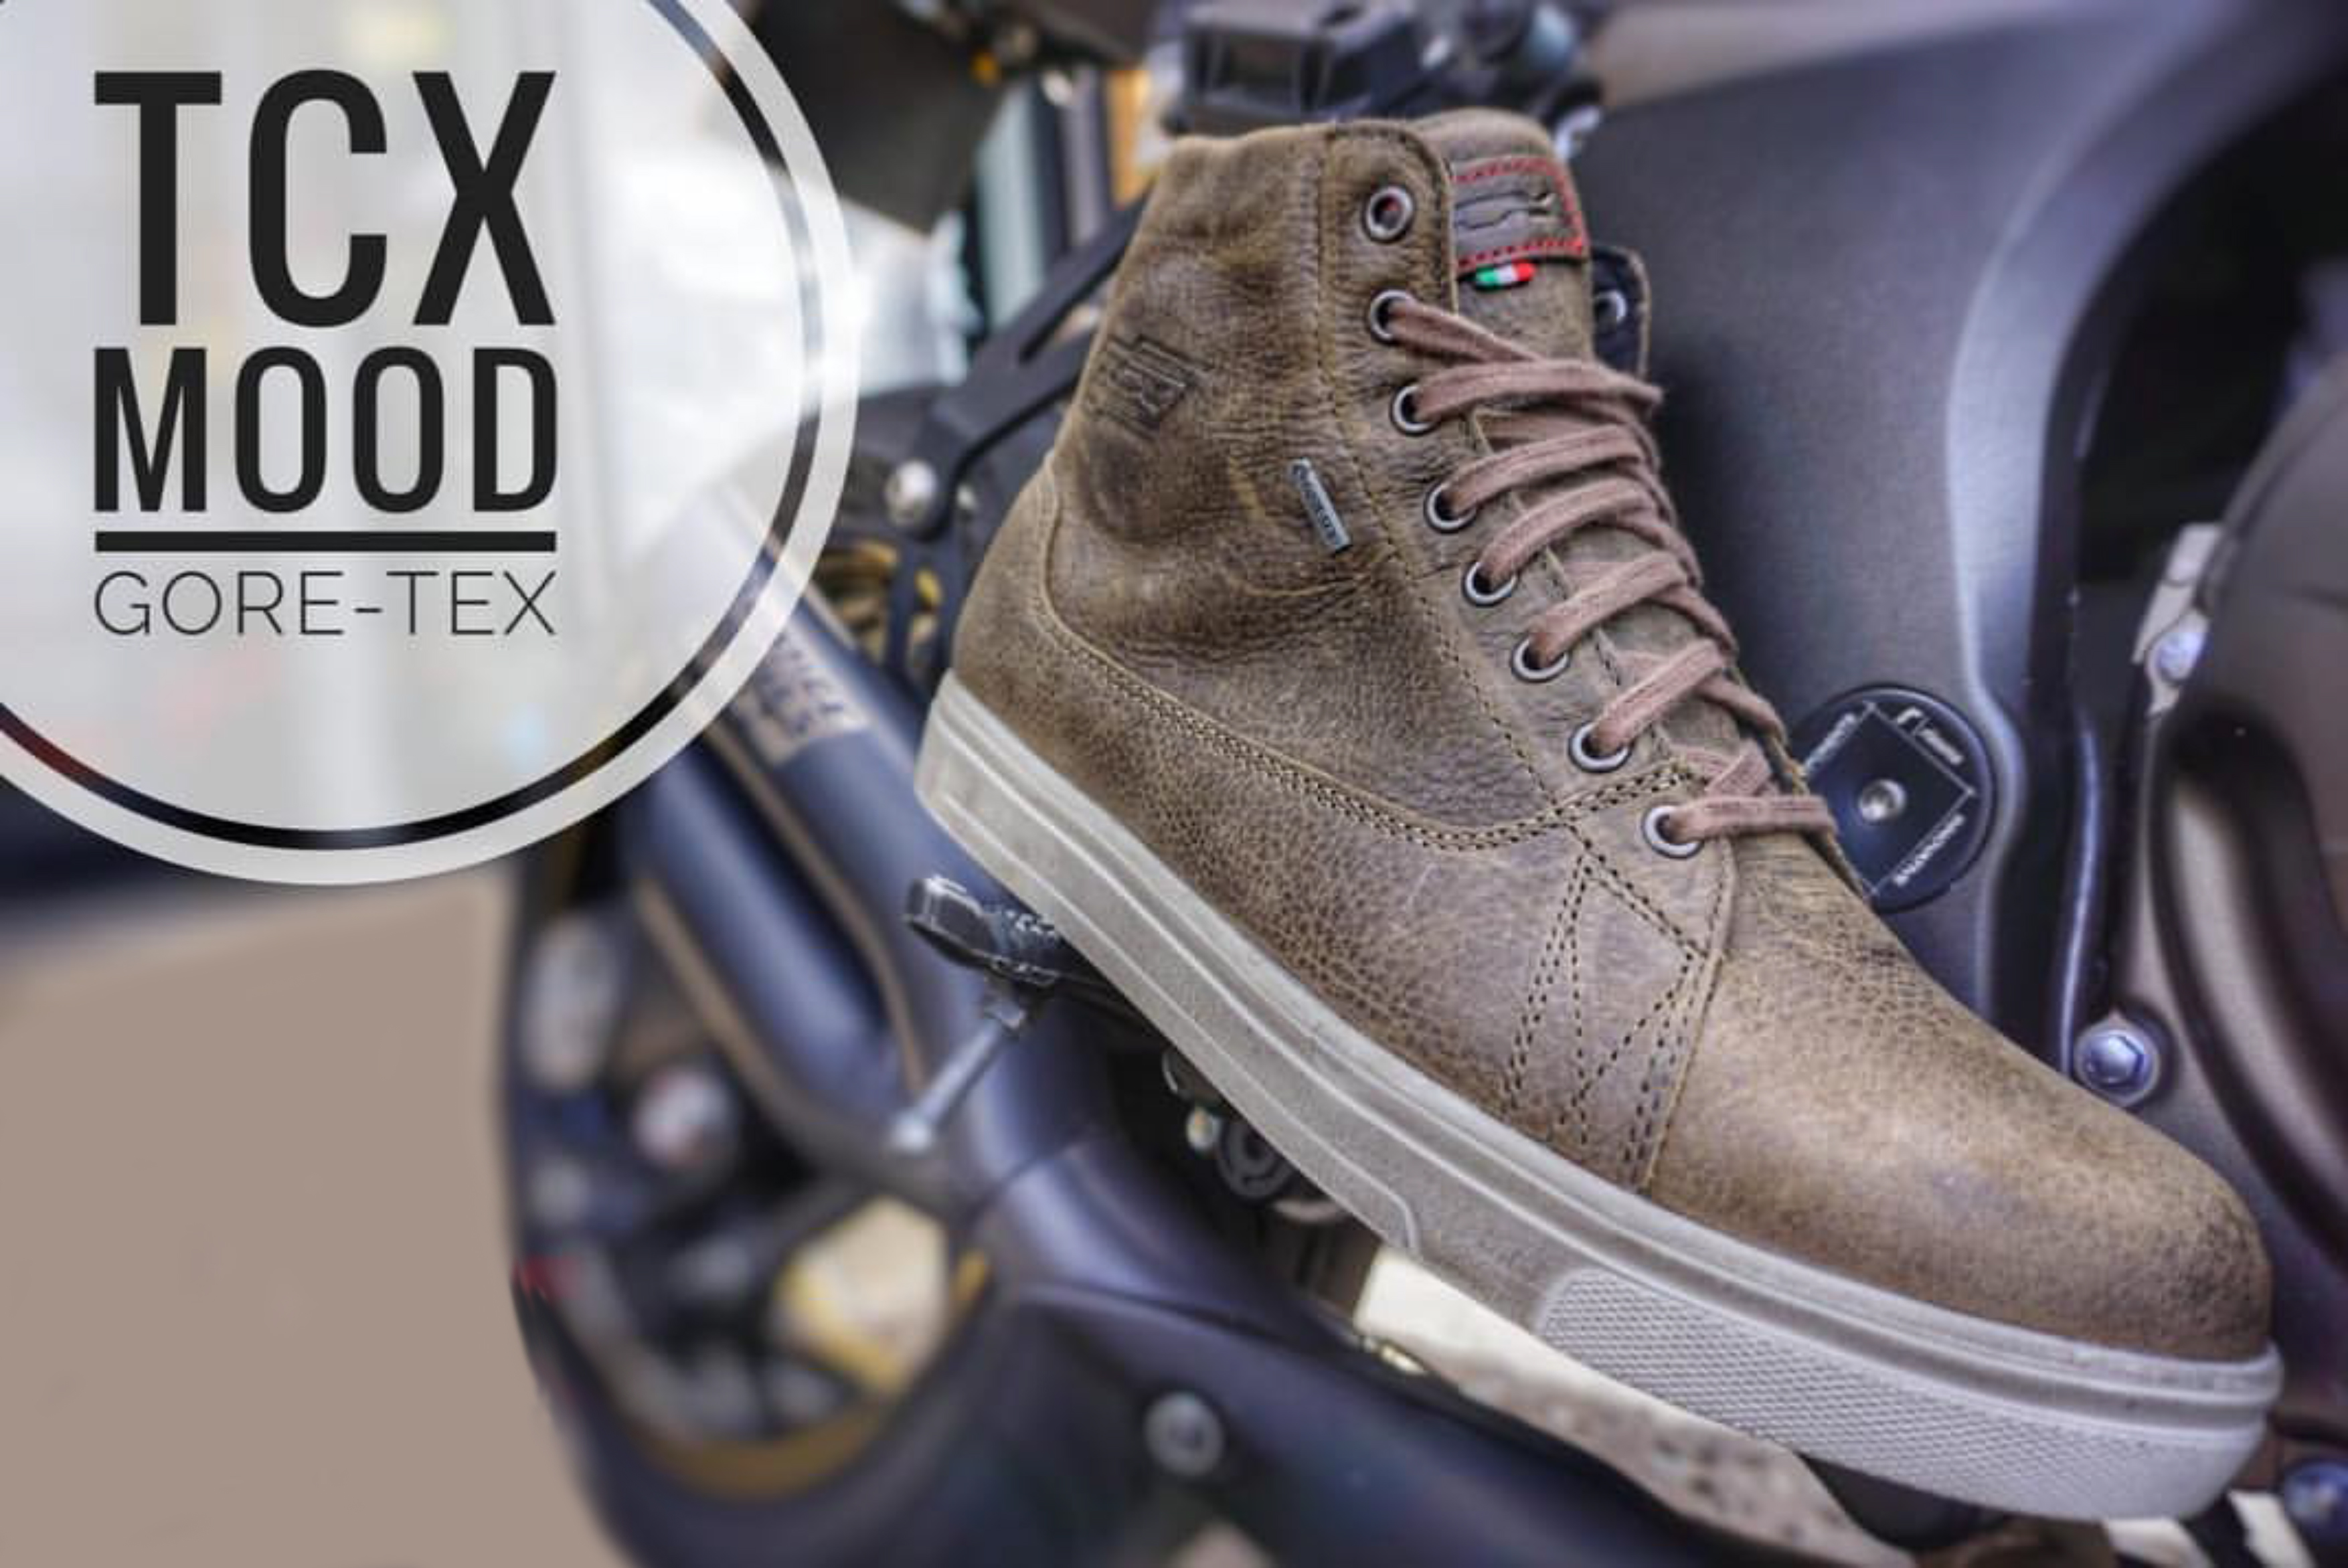 TCX Mood Gore-Tex Leather Motorcycle Boots